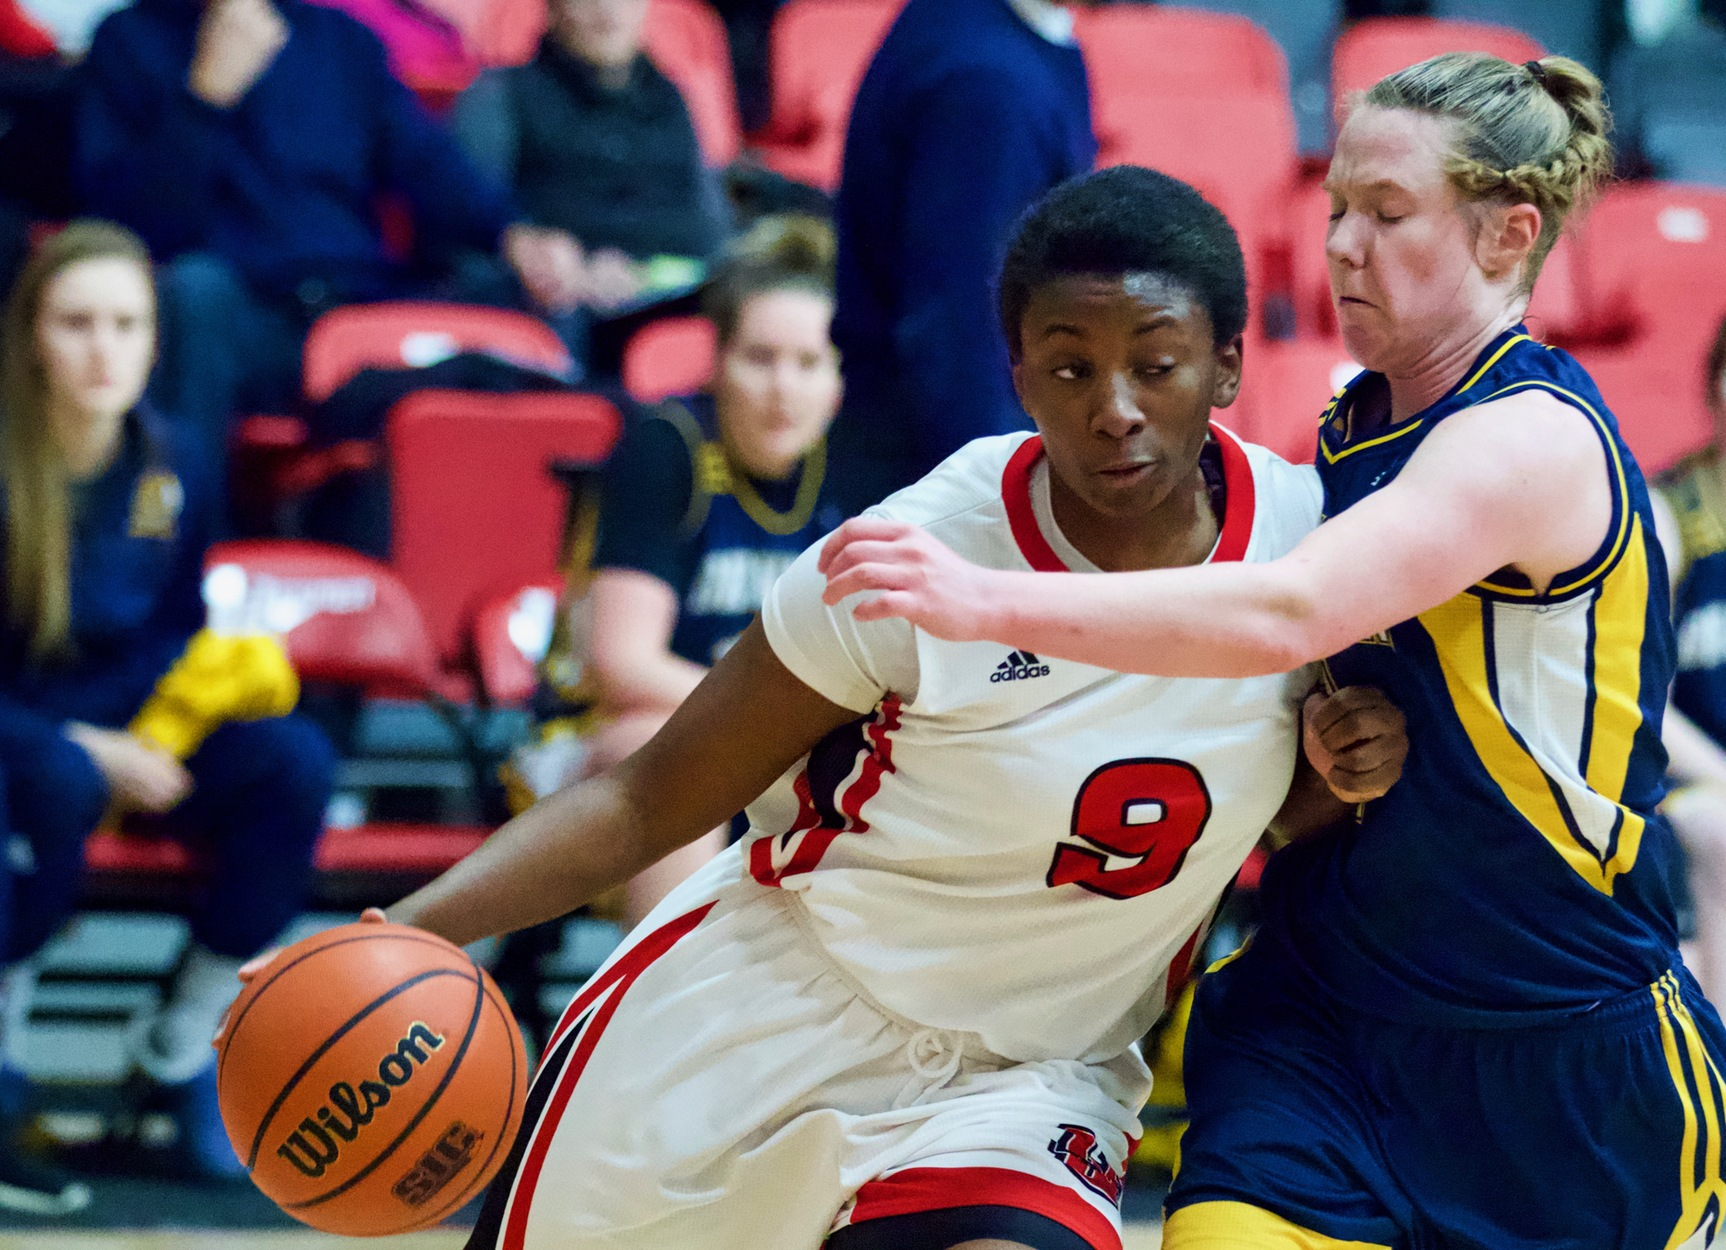 Faith Hezekiah had 29 points and 10 rebounds to lead the Wesmen women's basketball team to a non-conference win over the UNB Reds Saturday, Oct. 5, 2019. (Shanlee McLennan/Wesmen Athletics file)